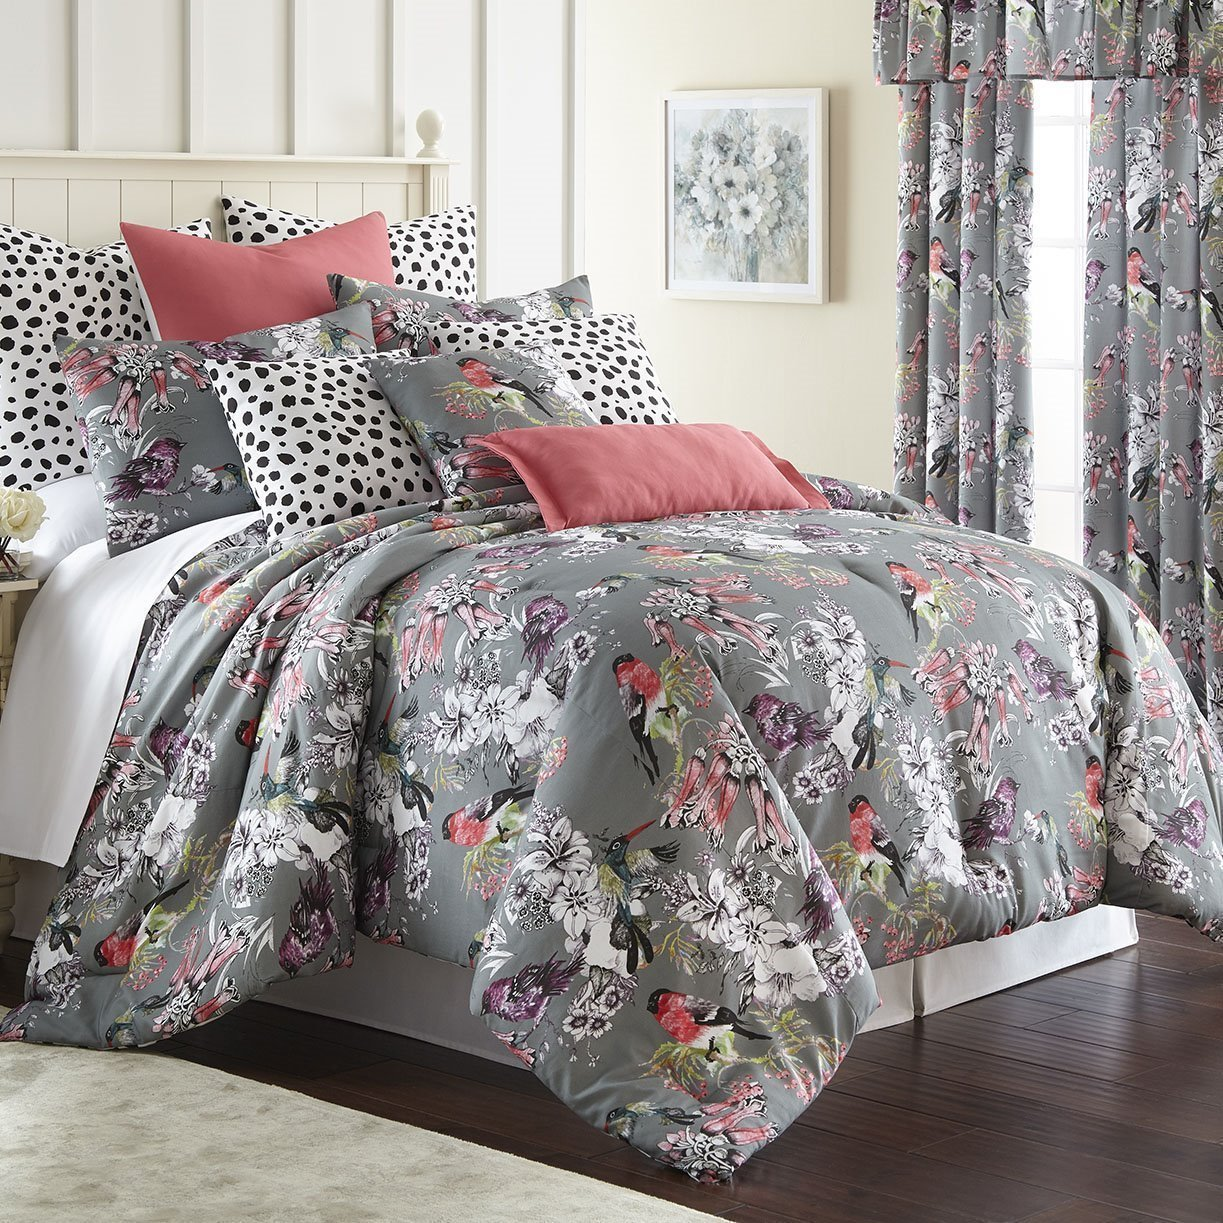 Birds In Bliss Duvet Cover Set Queen Size